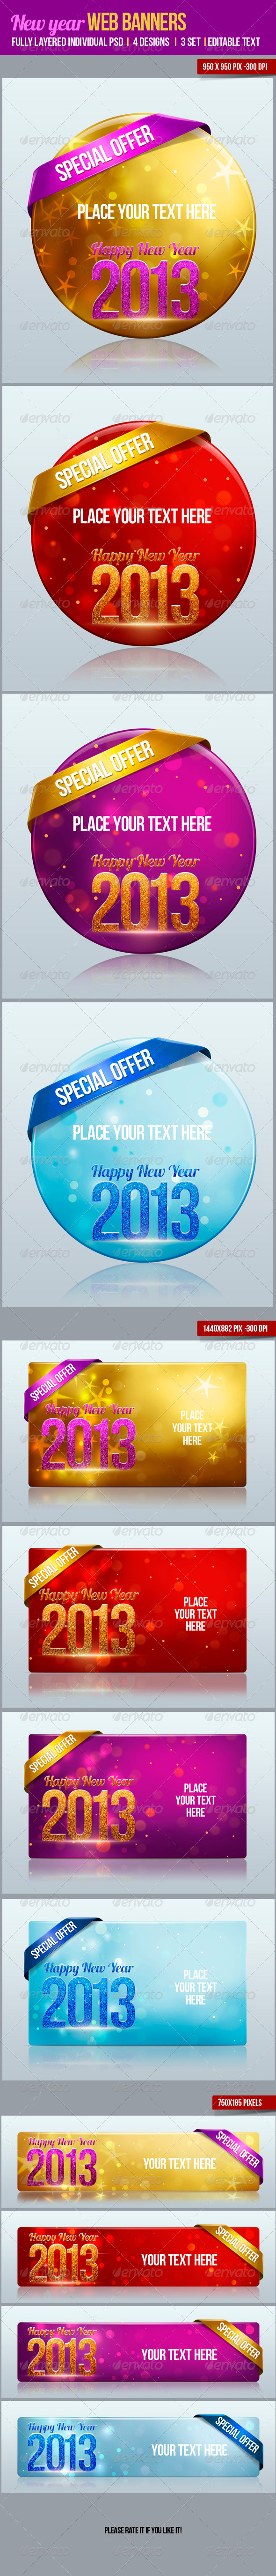 GraphicRiver New Year Web Banners 3458646